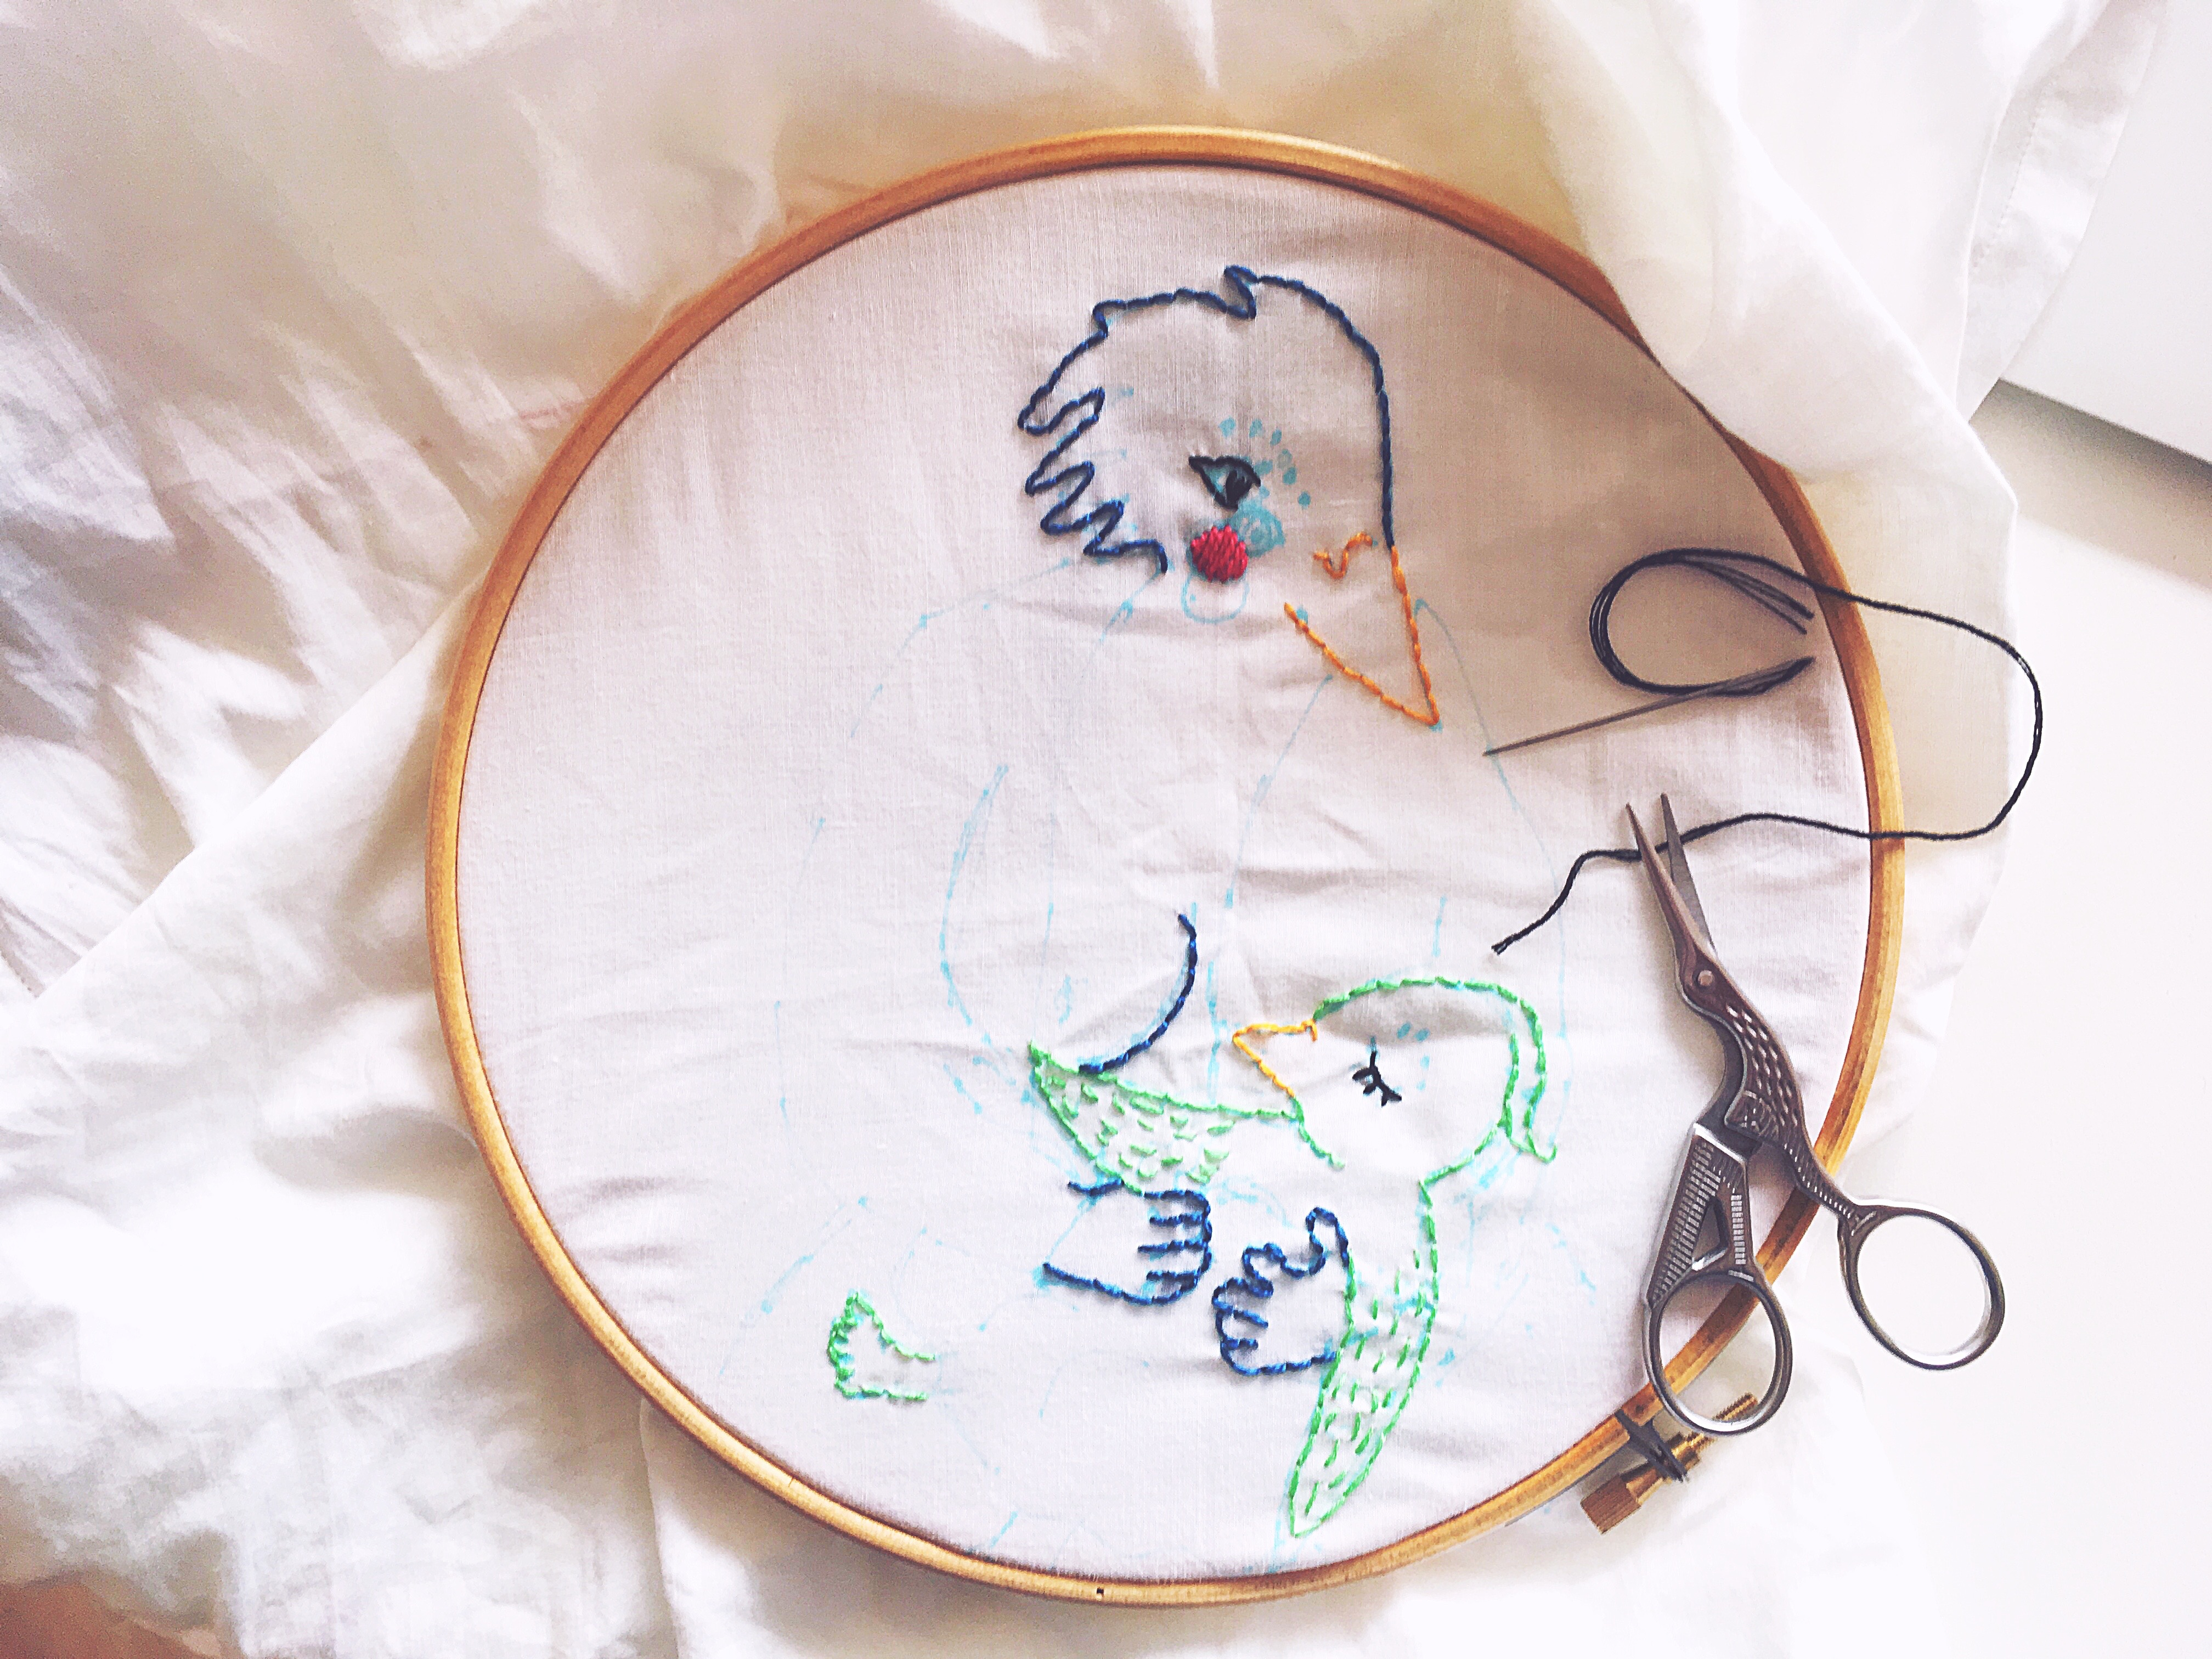 A handembroidery in progress